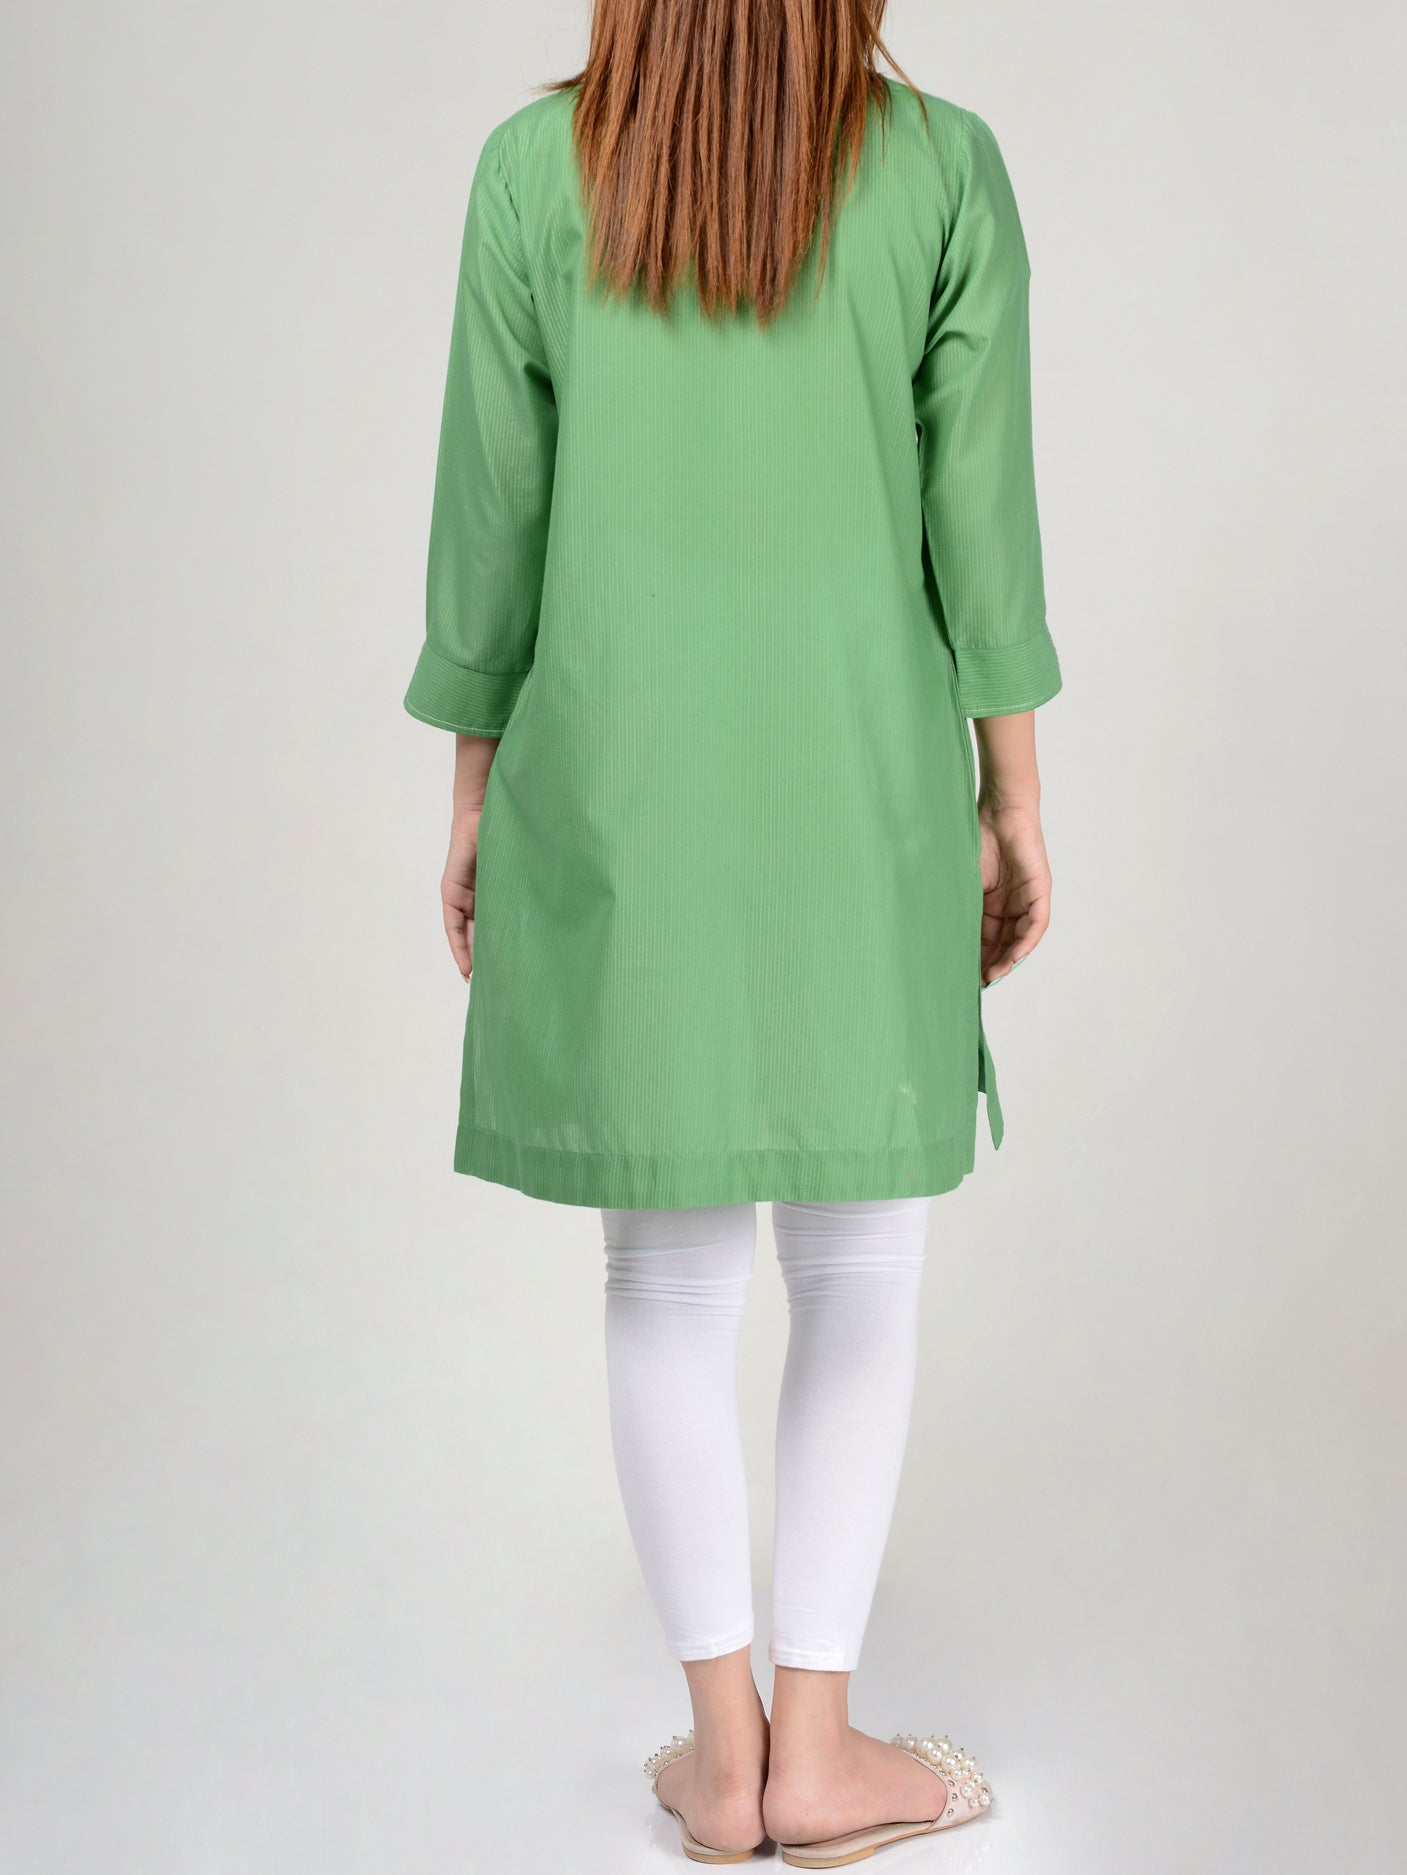 Pret Embroidered Lawn Shirt P0242 Limelight